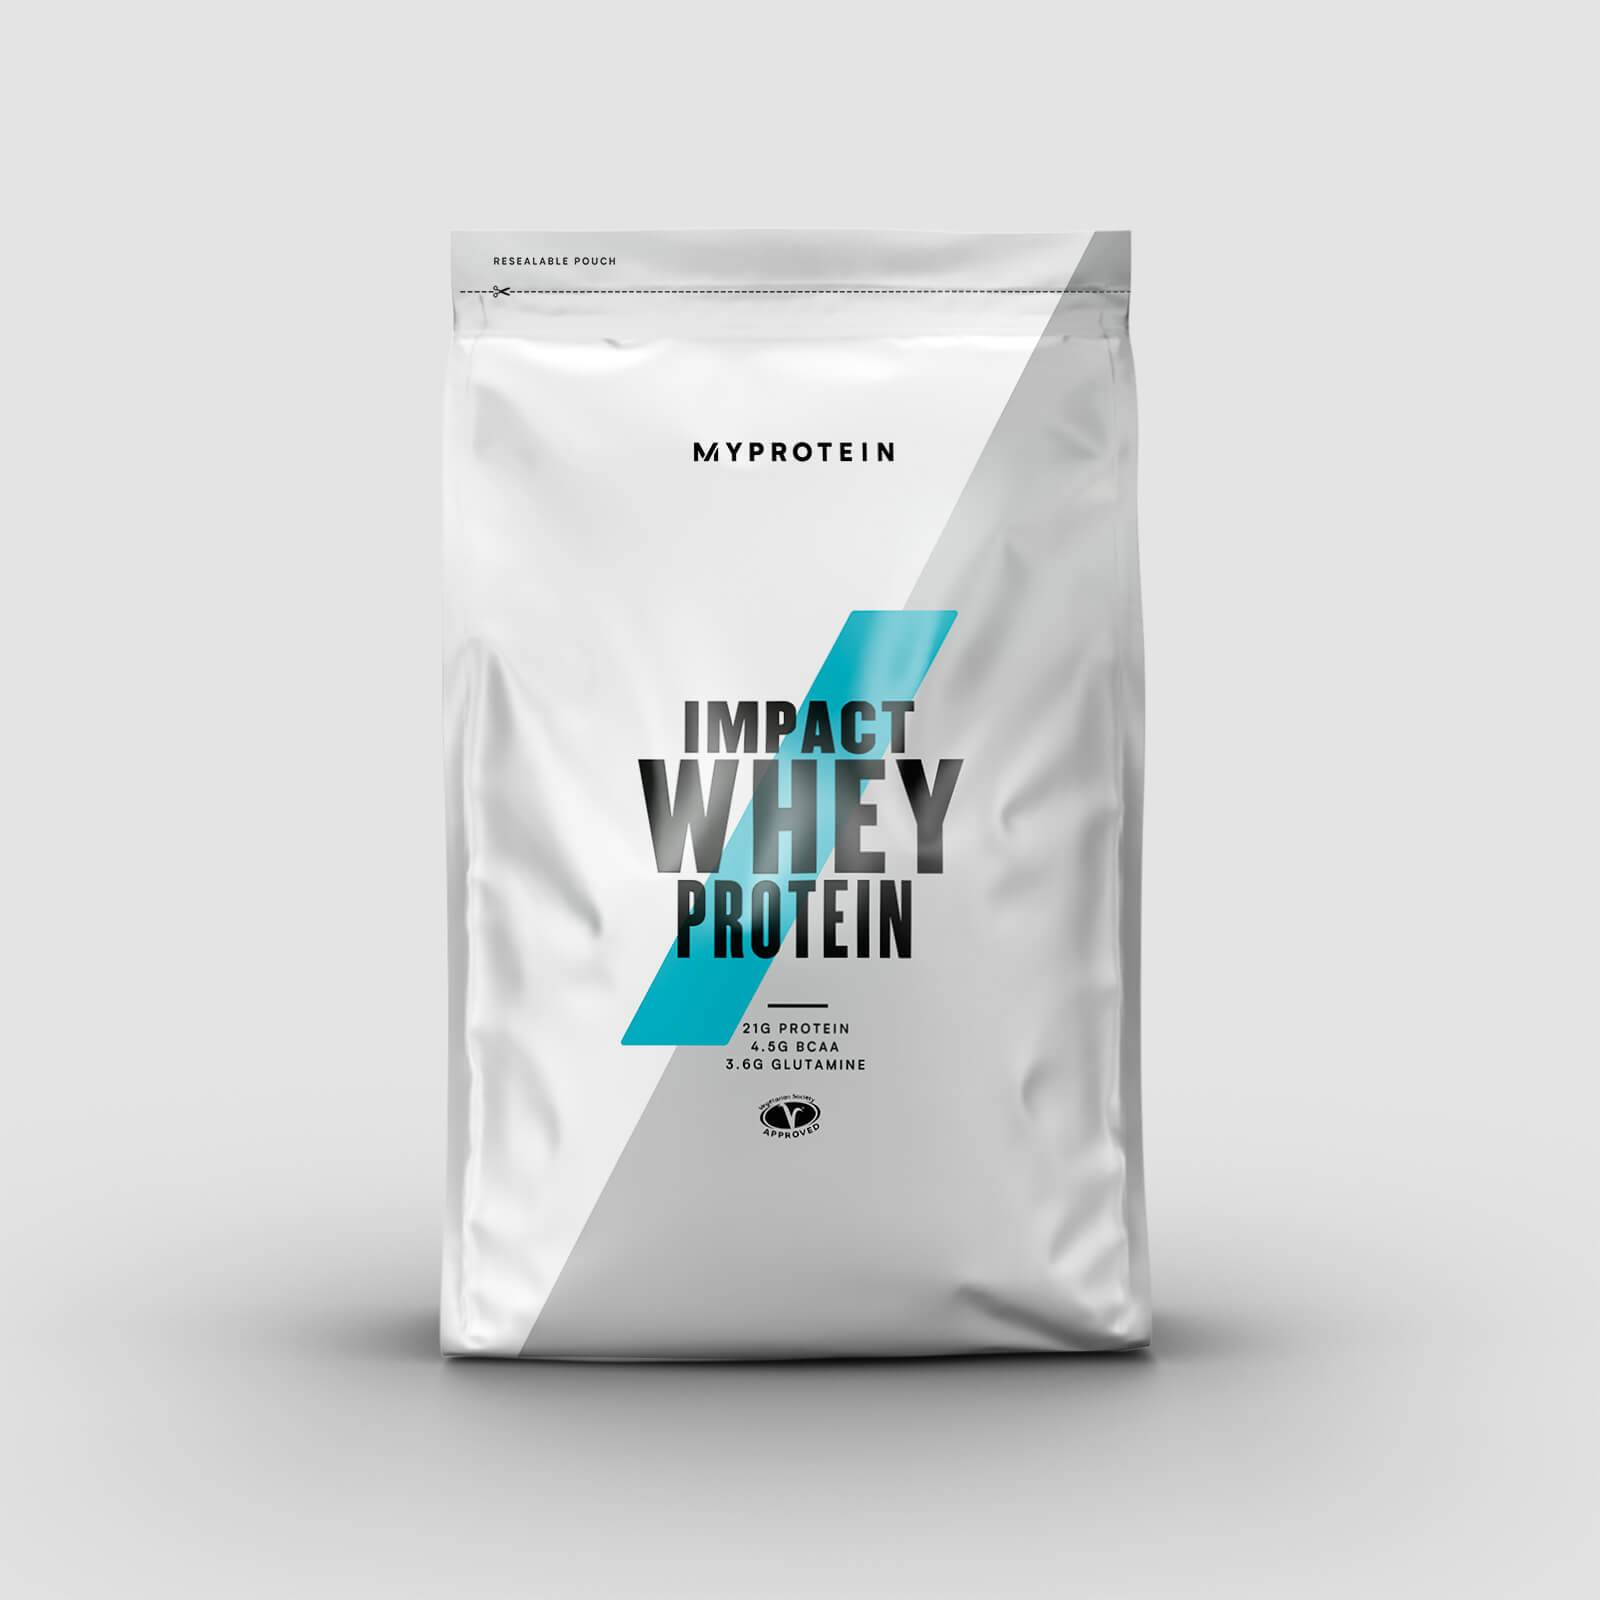 Myprotein Impact Whey Protein - 2.5kg - Natural Banana - New And Improved